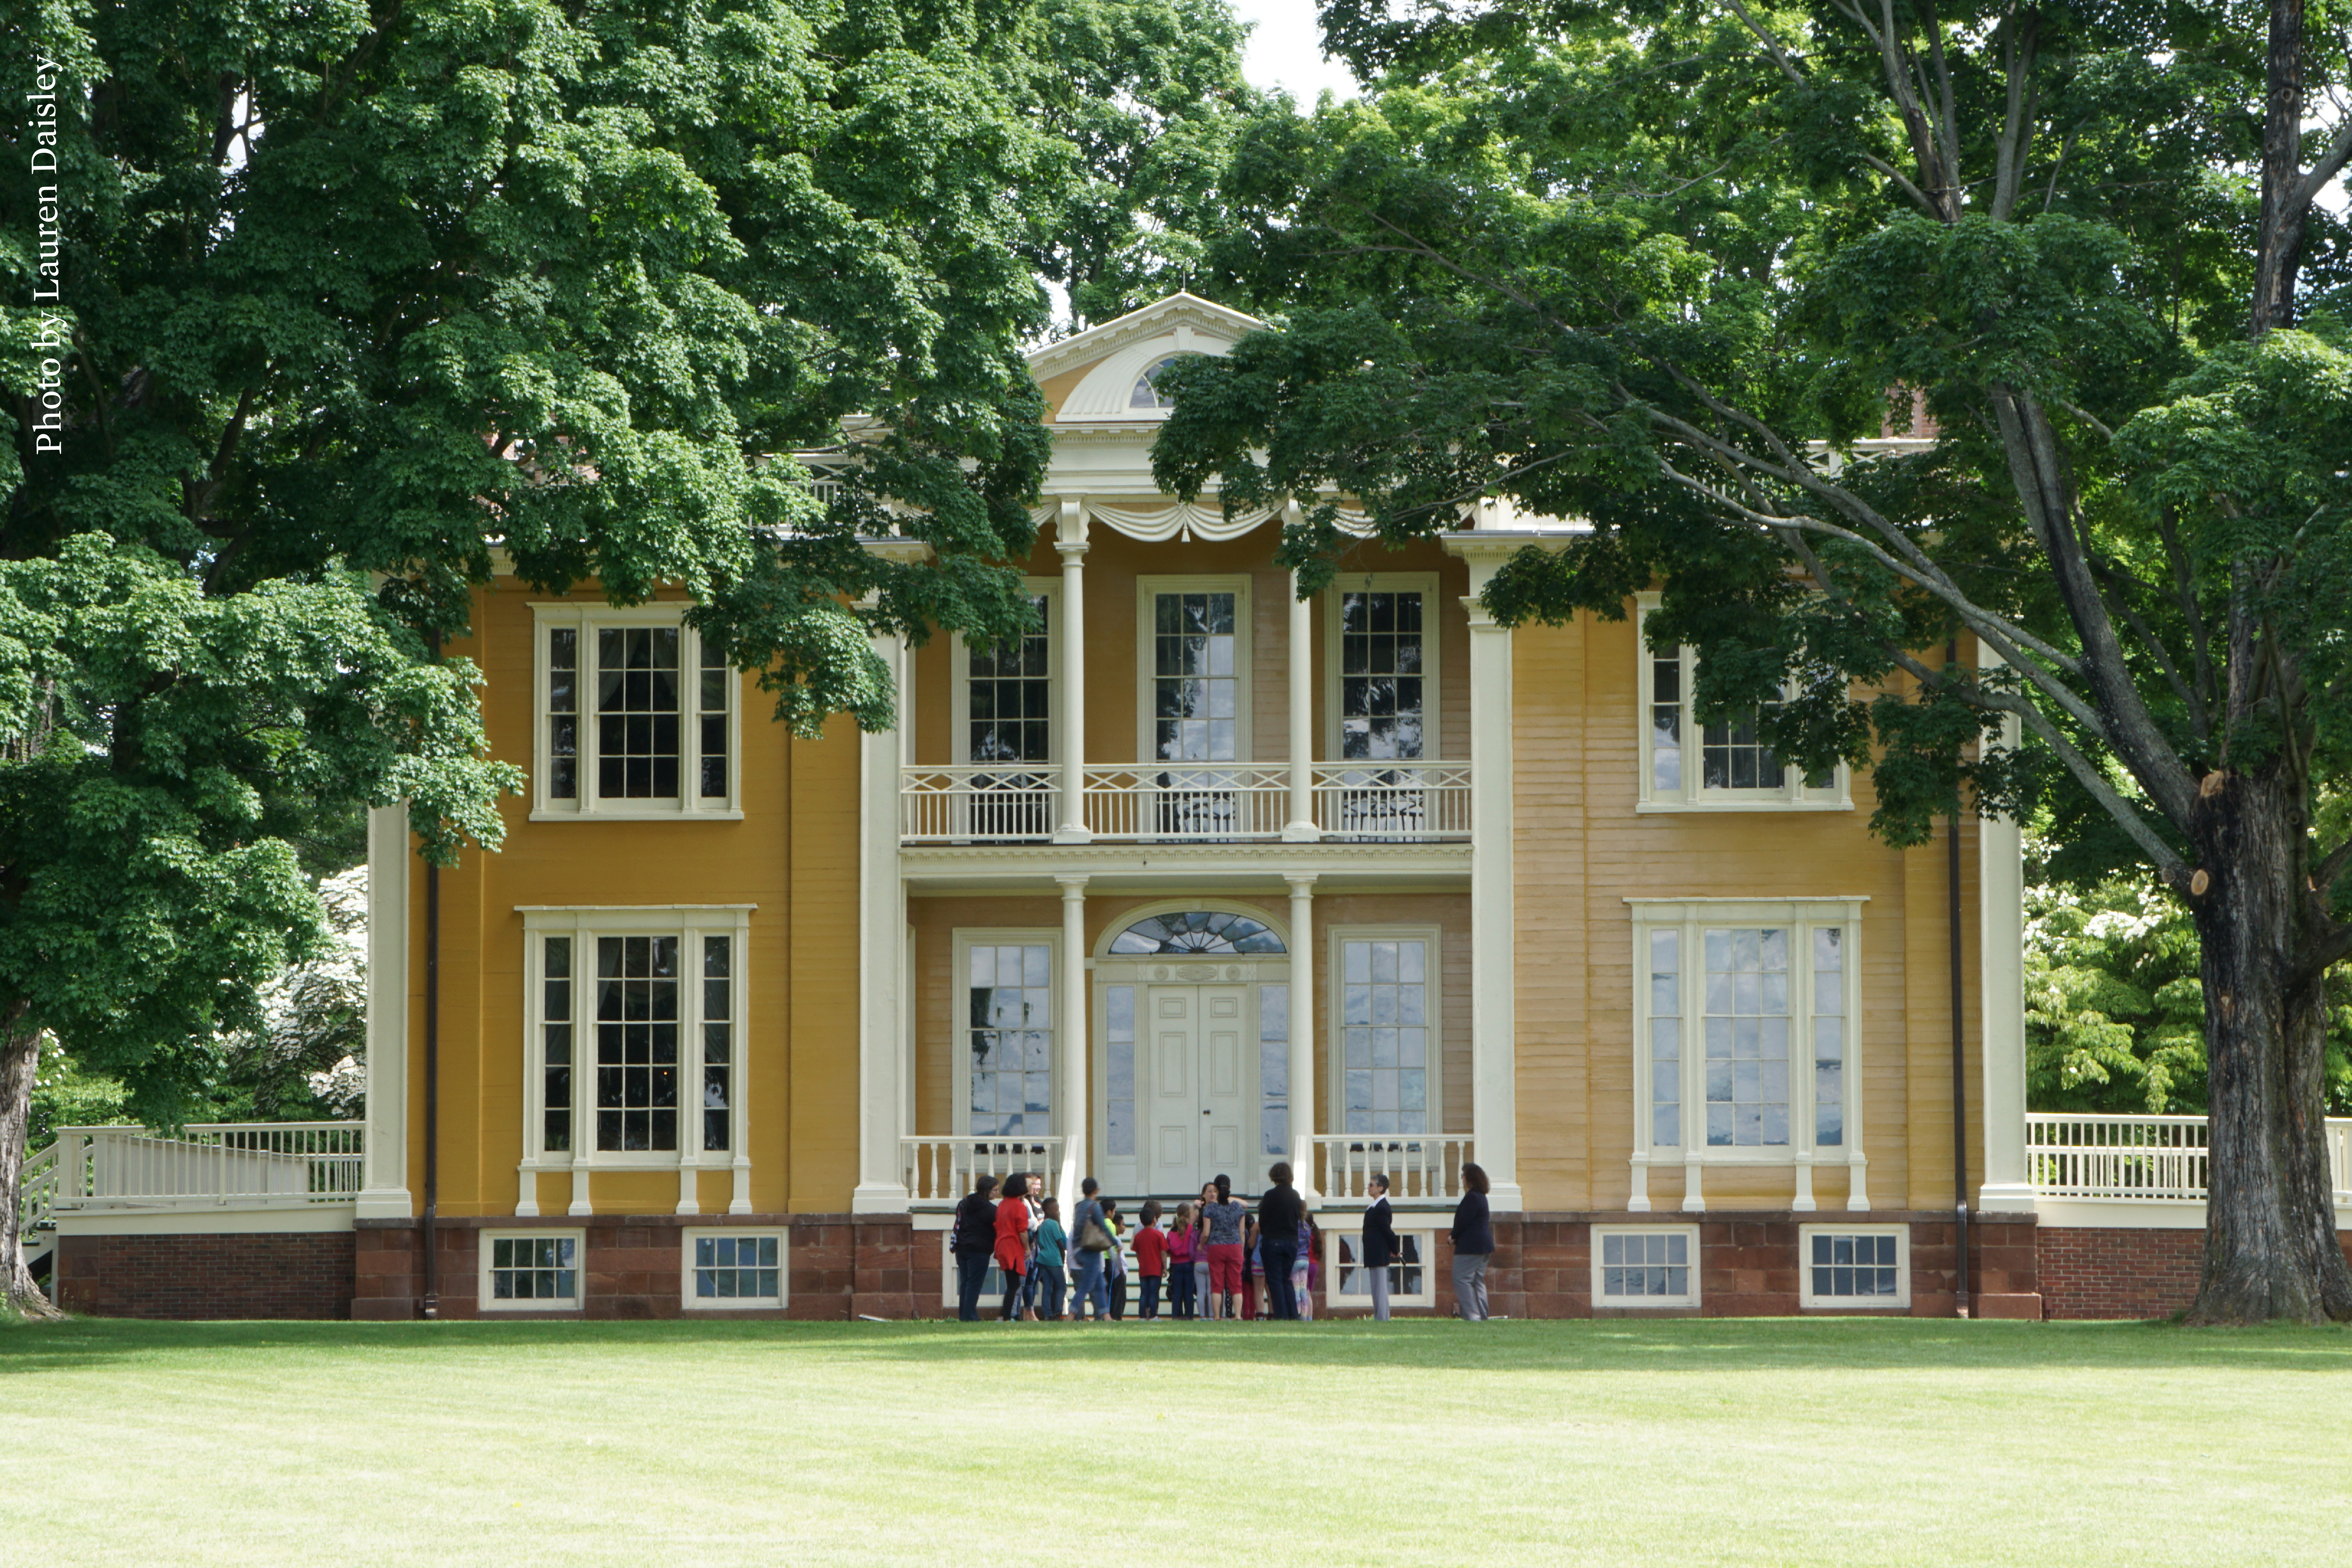 Boscobel offers guided tours of the house and grounds